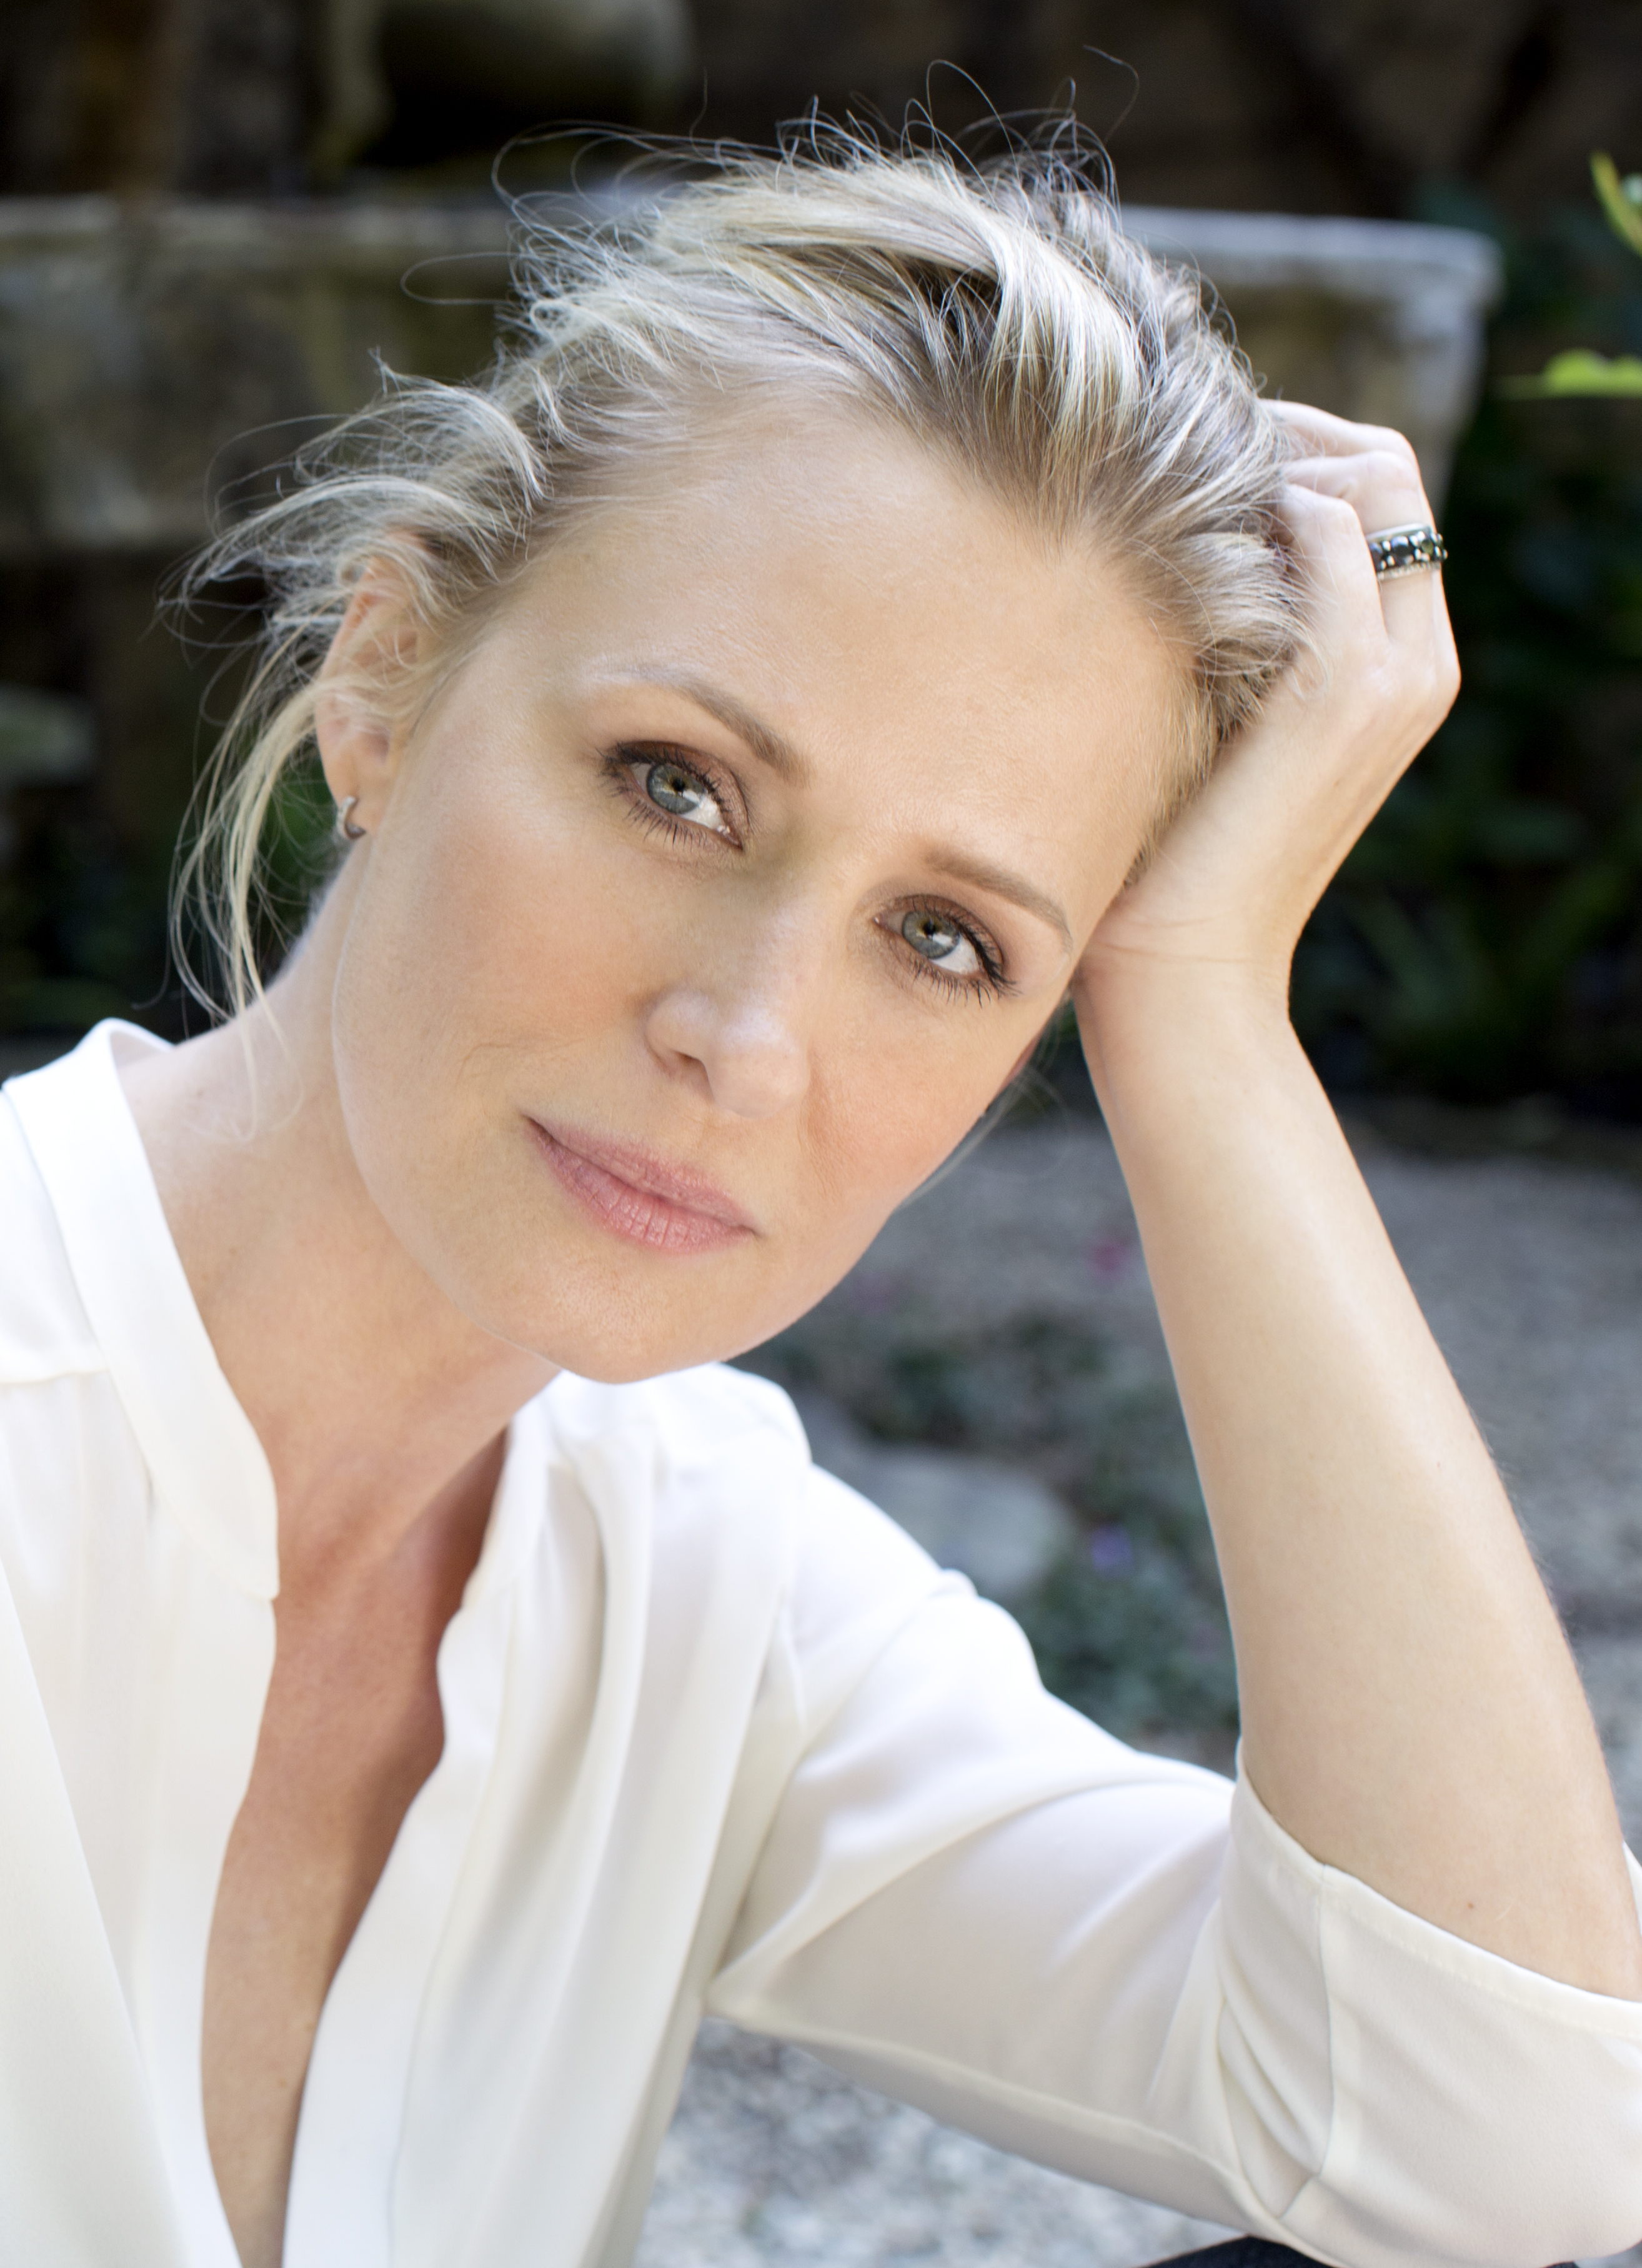 Sandra Smith (actor)